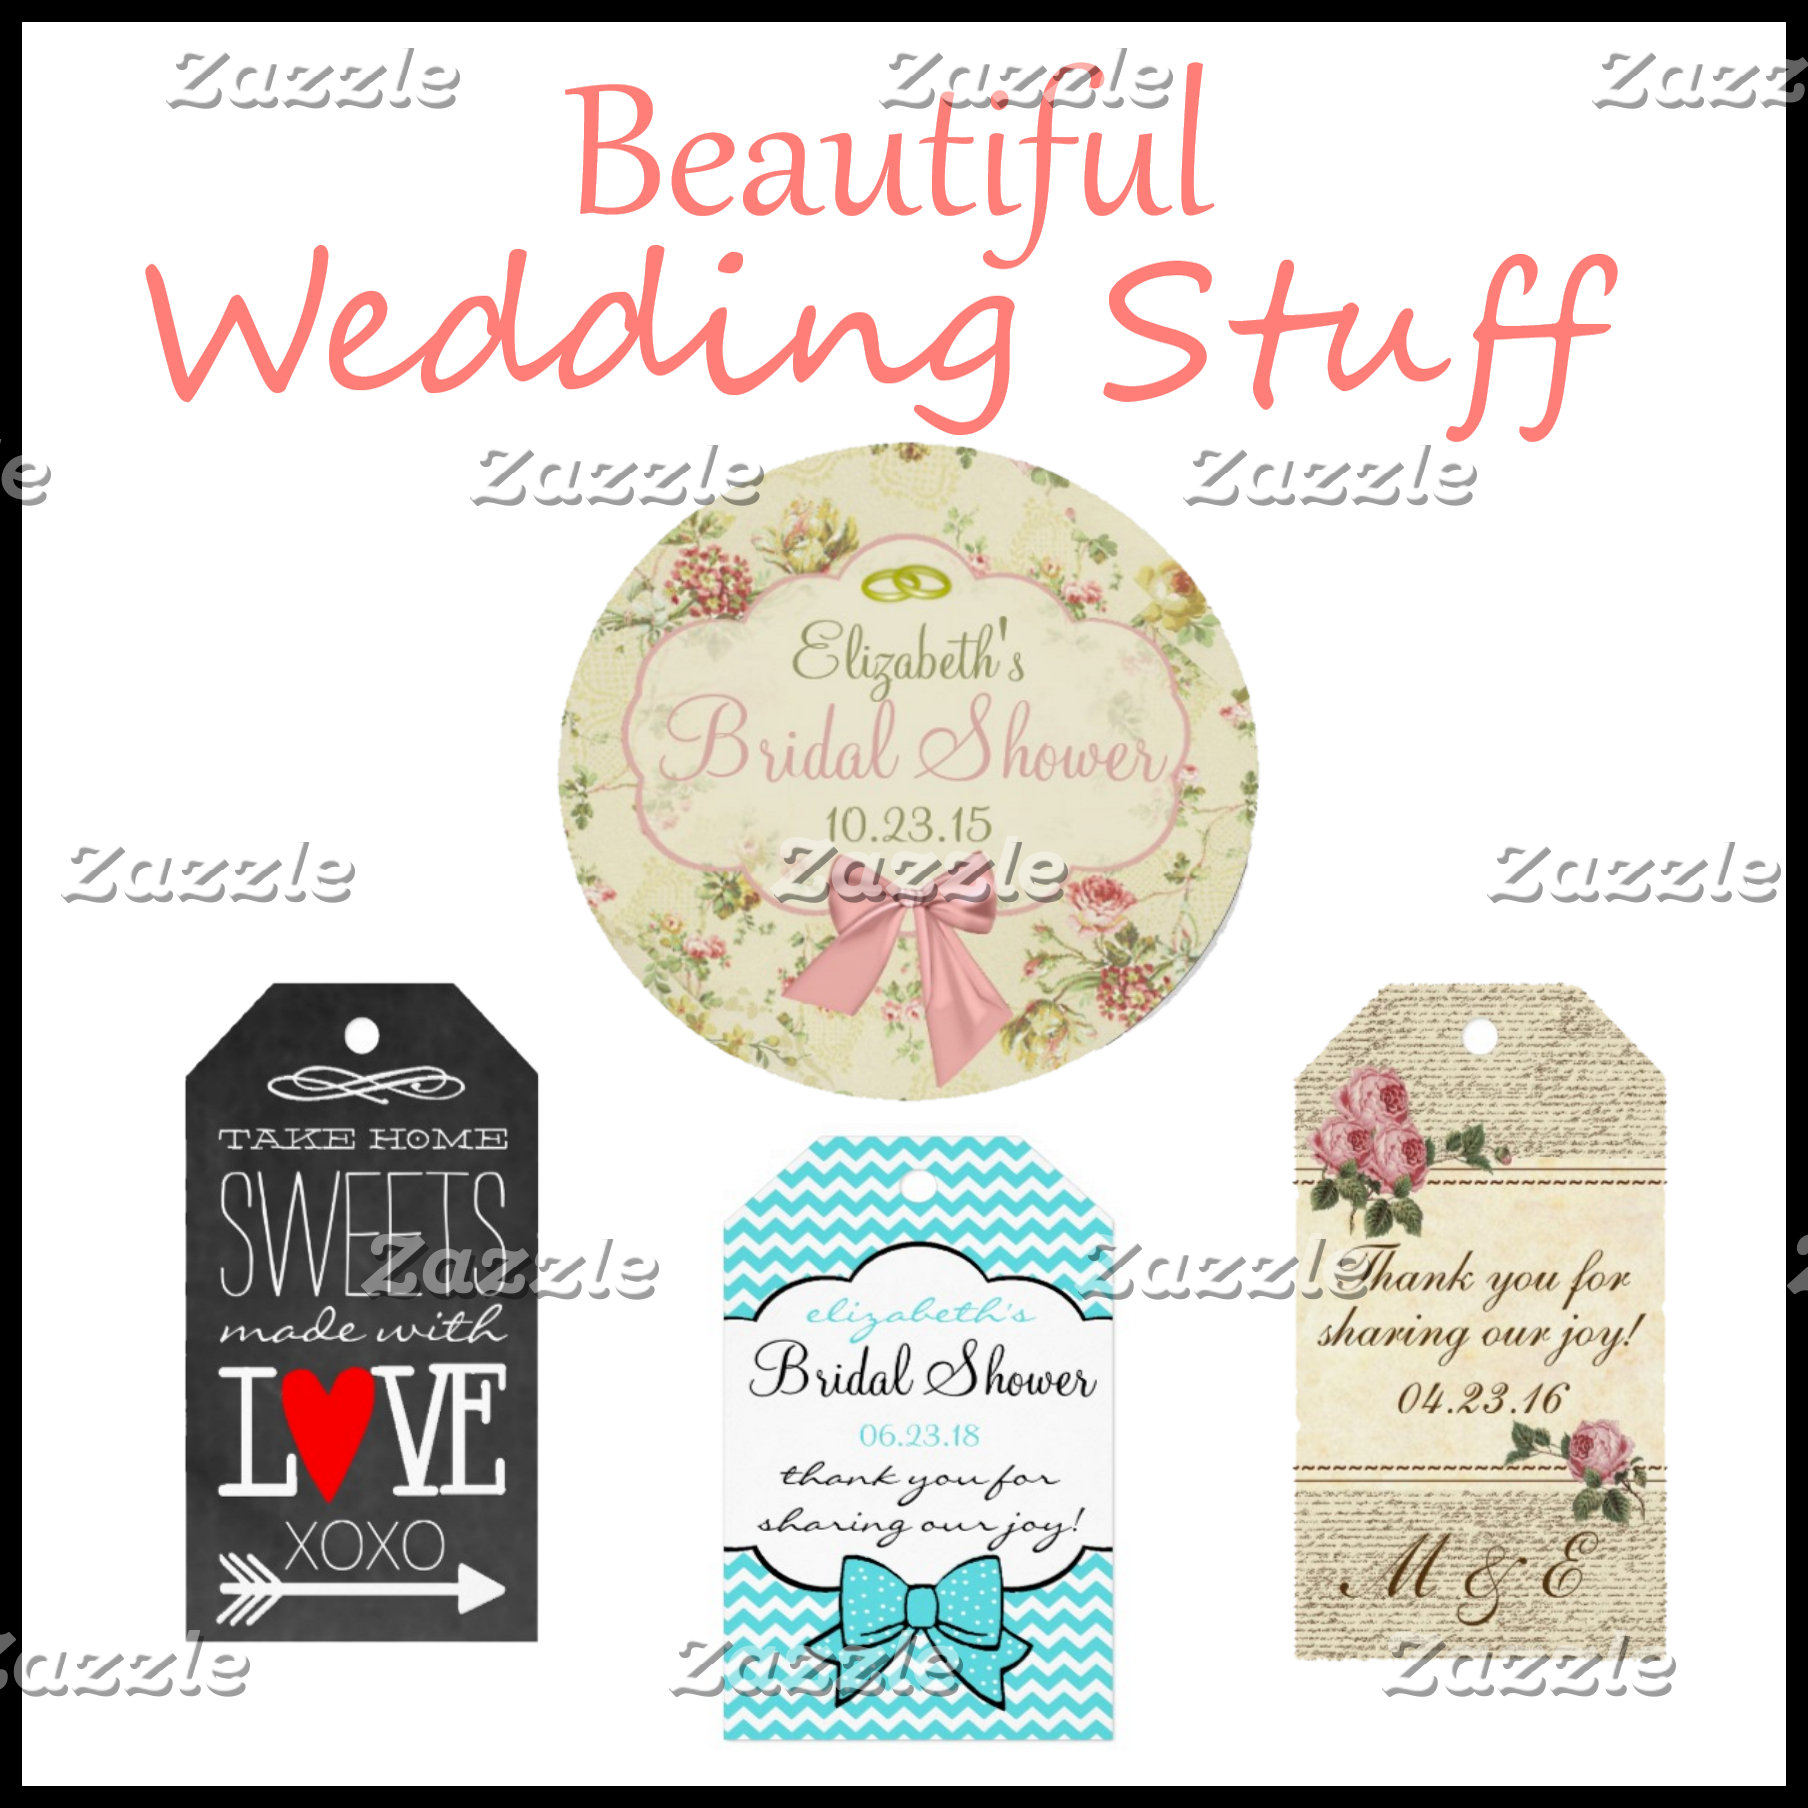 Wedding Stuff Here!